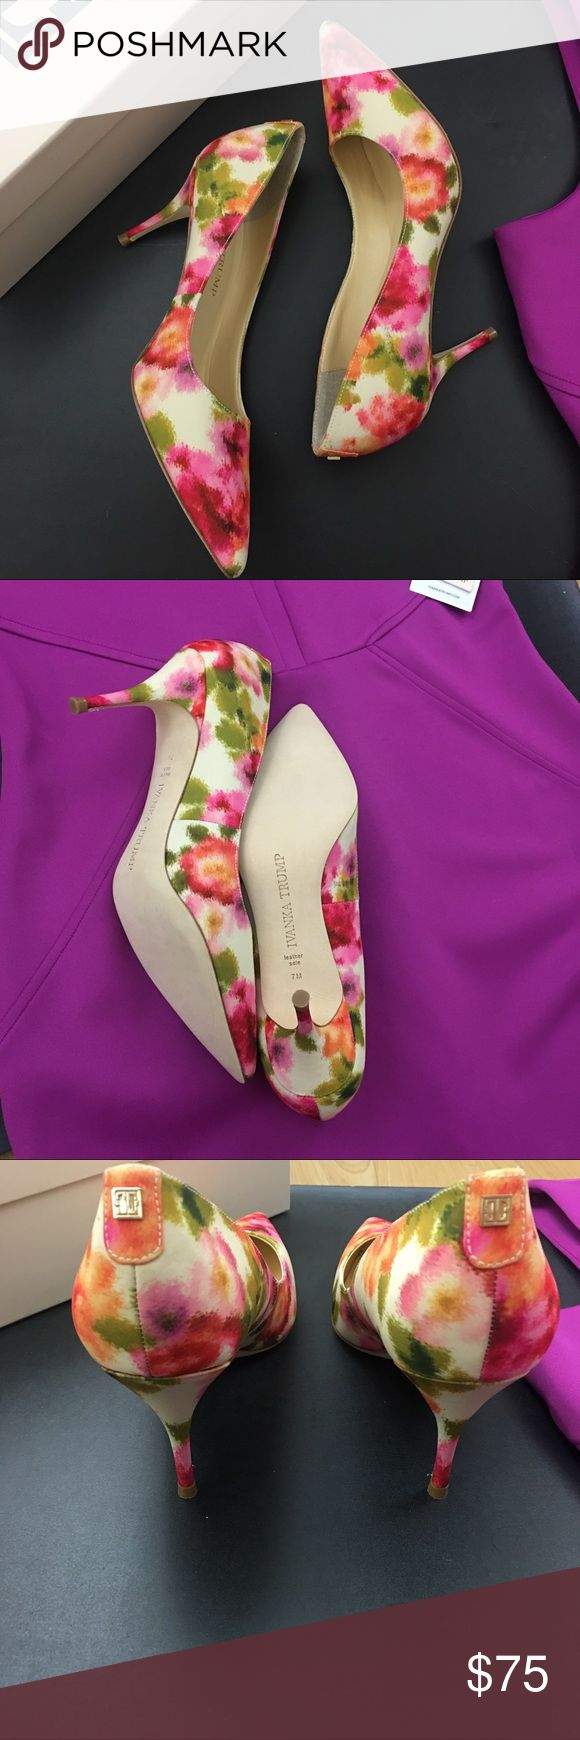 """New in a Box IVANKA TRUMP Heels Tirra2 Size 7 IVANKA TRUMP Heels Tirra2 Size 7M 3"""" Heels Her classic design is beautiful and classic!  Complements her dresses in my closet. Ivanka Trump Shoes Heels"""